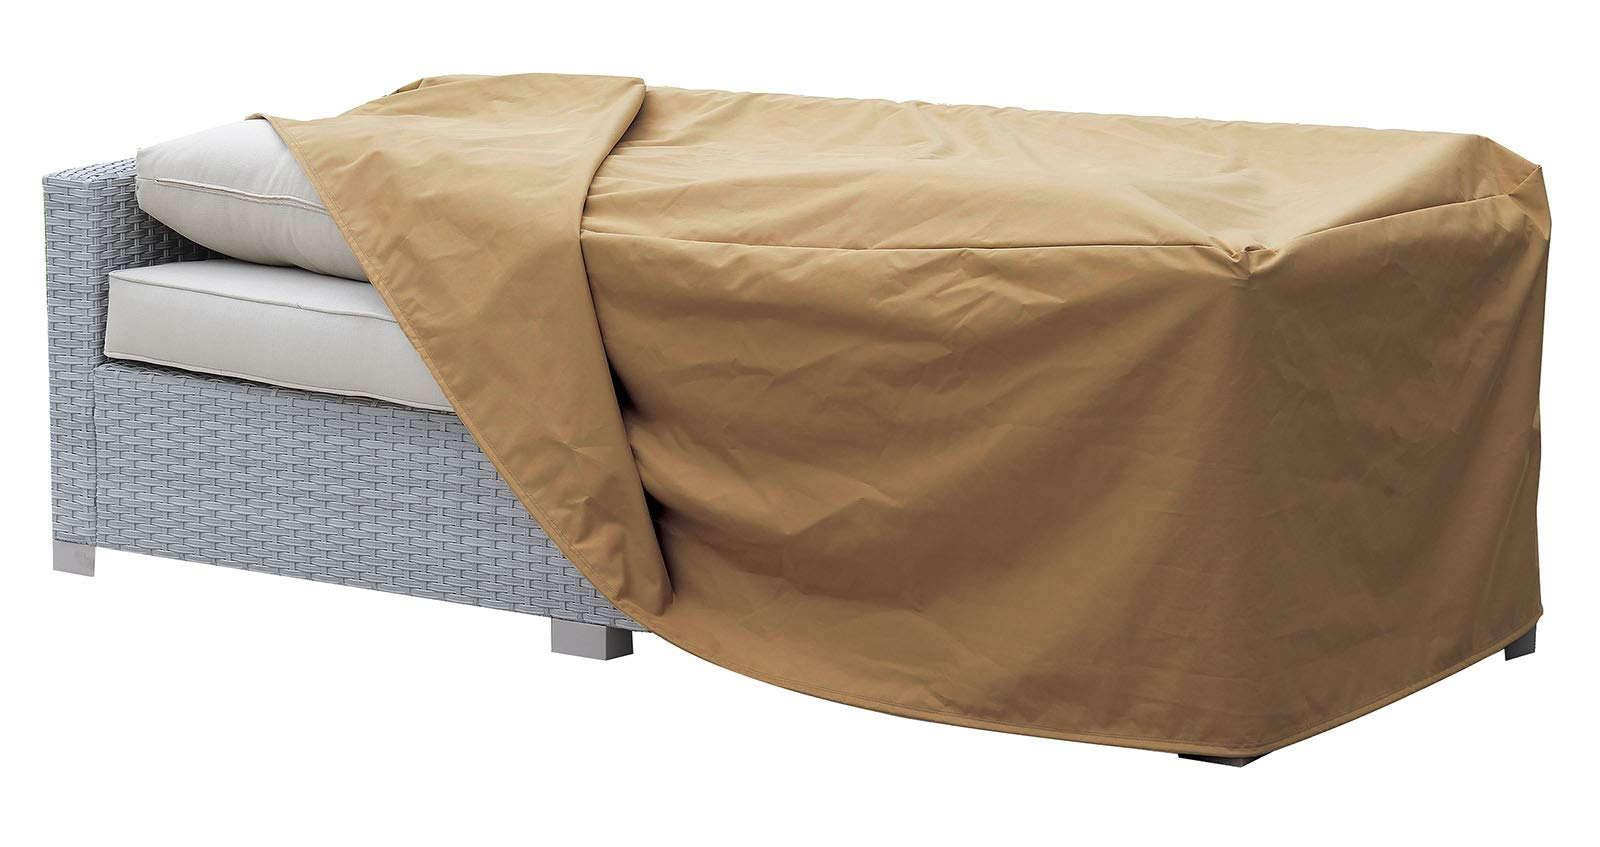 Furniture of America Waterproof Fabric Dust Cover for Outdoor Sofa, Medium, Light Brown by Furniture of America